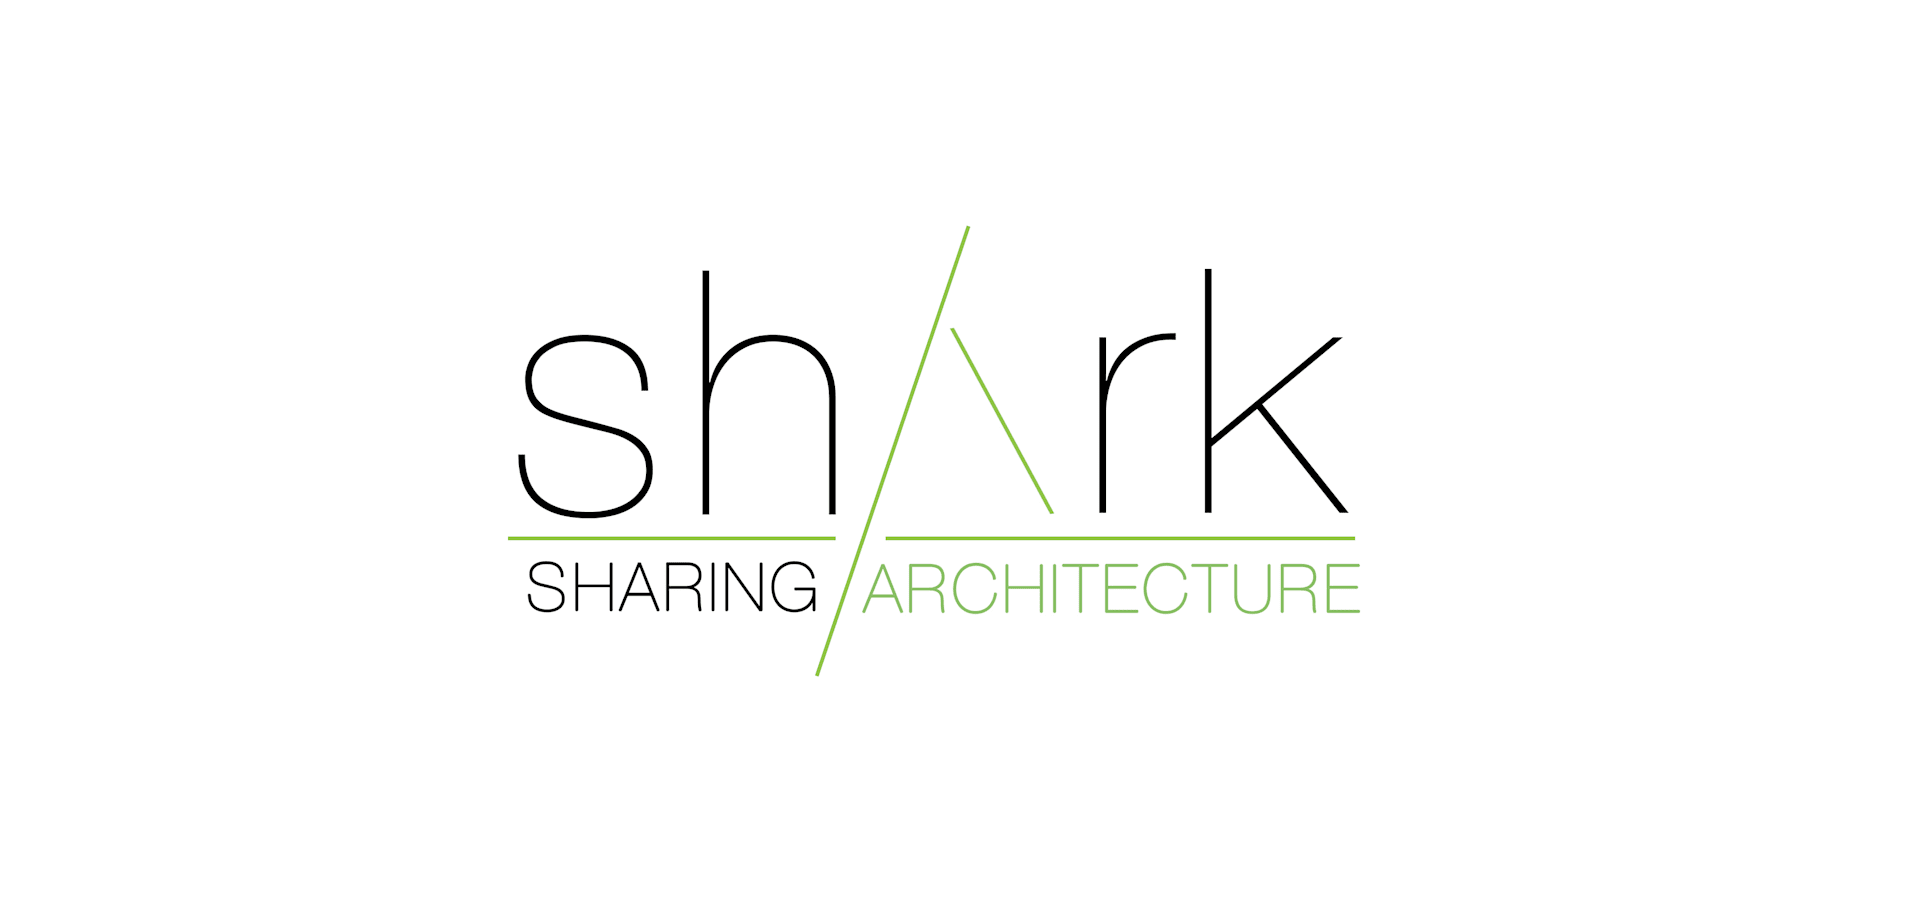 SH.ARK – Sharing Architecture